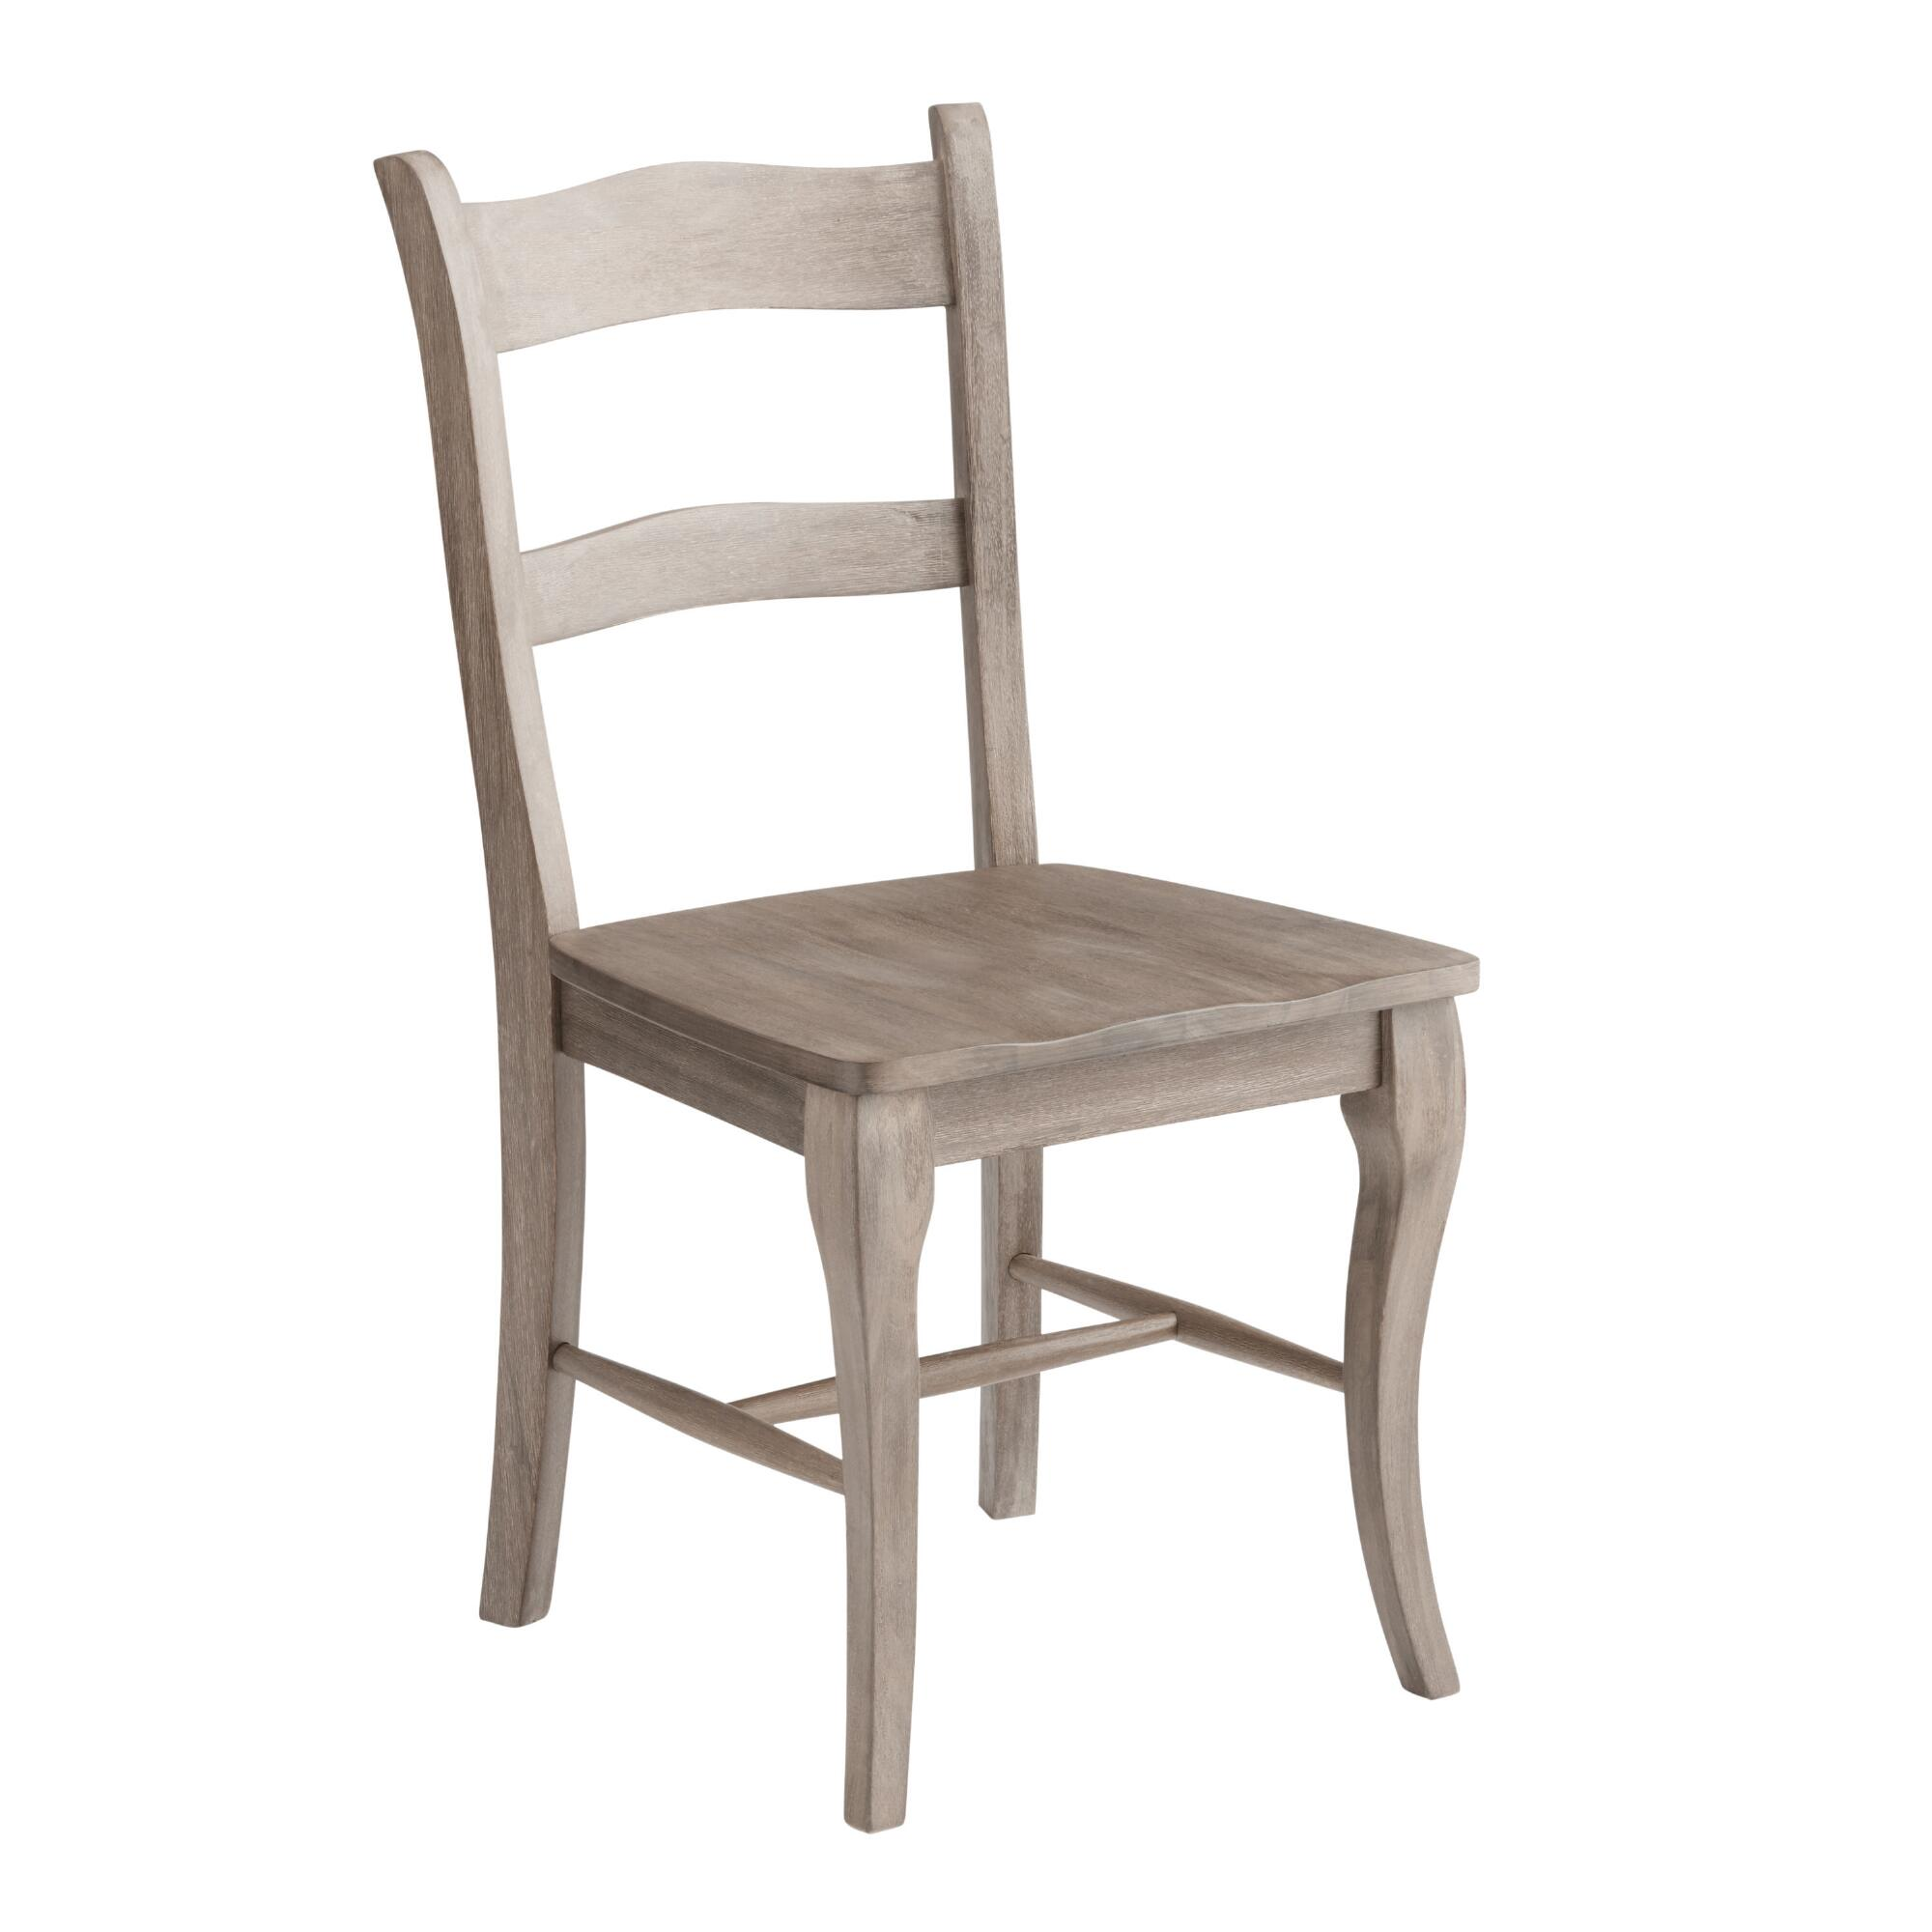 Weathered gray wood jozy dining chairs set of world market